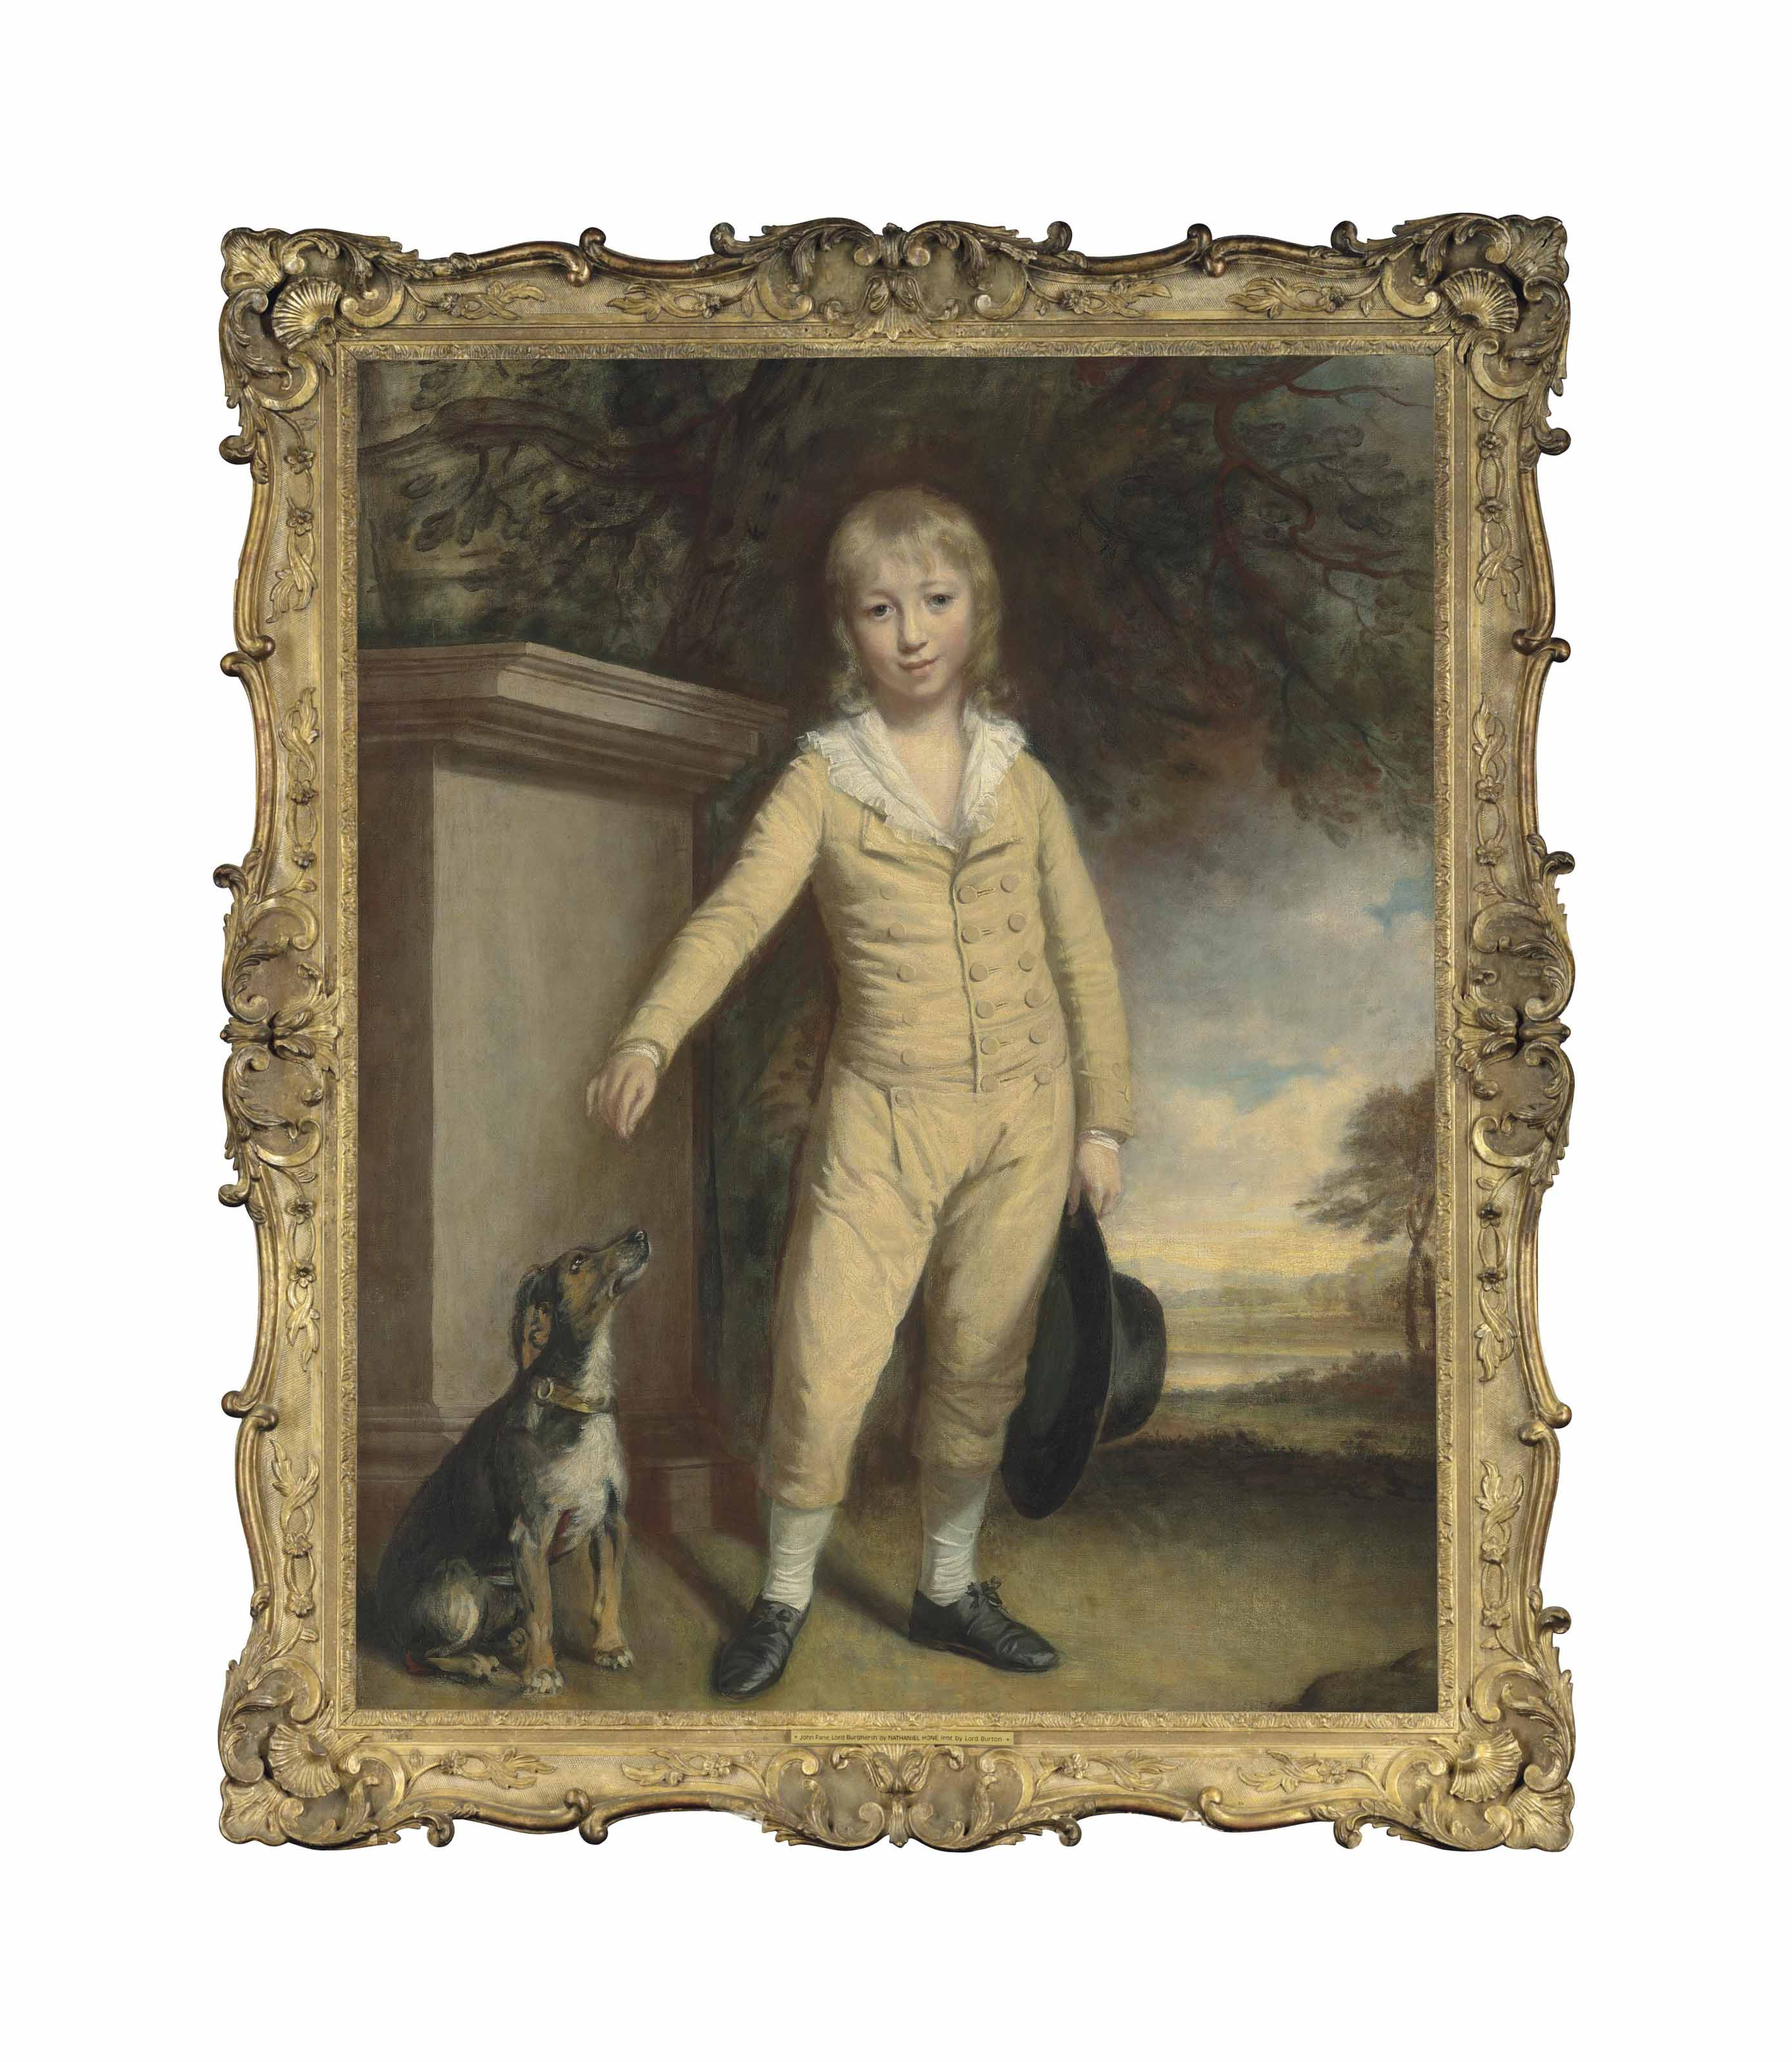 Portrait of John Fane, 10th Earl of Westmorland (1759-1841), as a boy, full-length, in a cream suit, holding a hat, with a terrier, by a plinth, in a park landscape